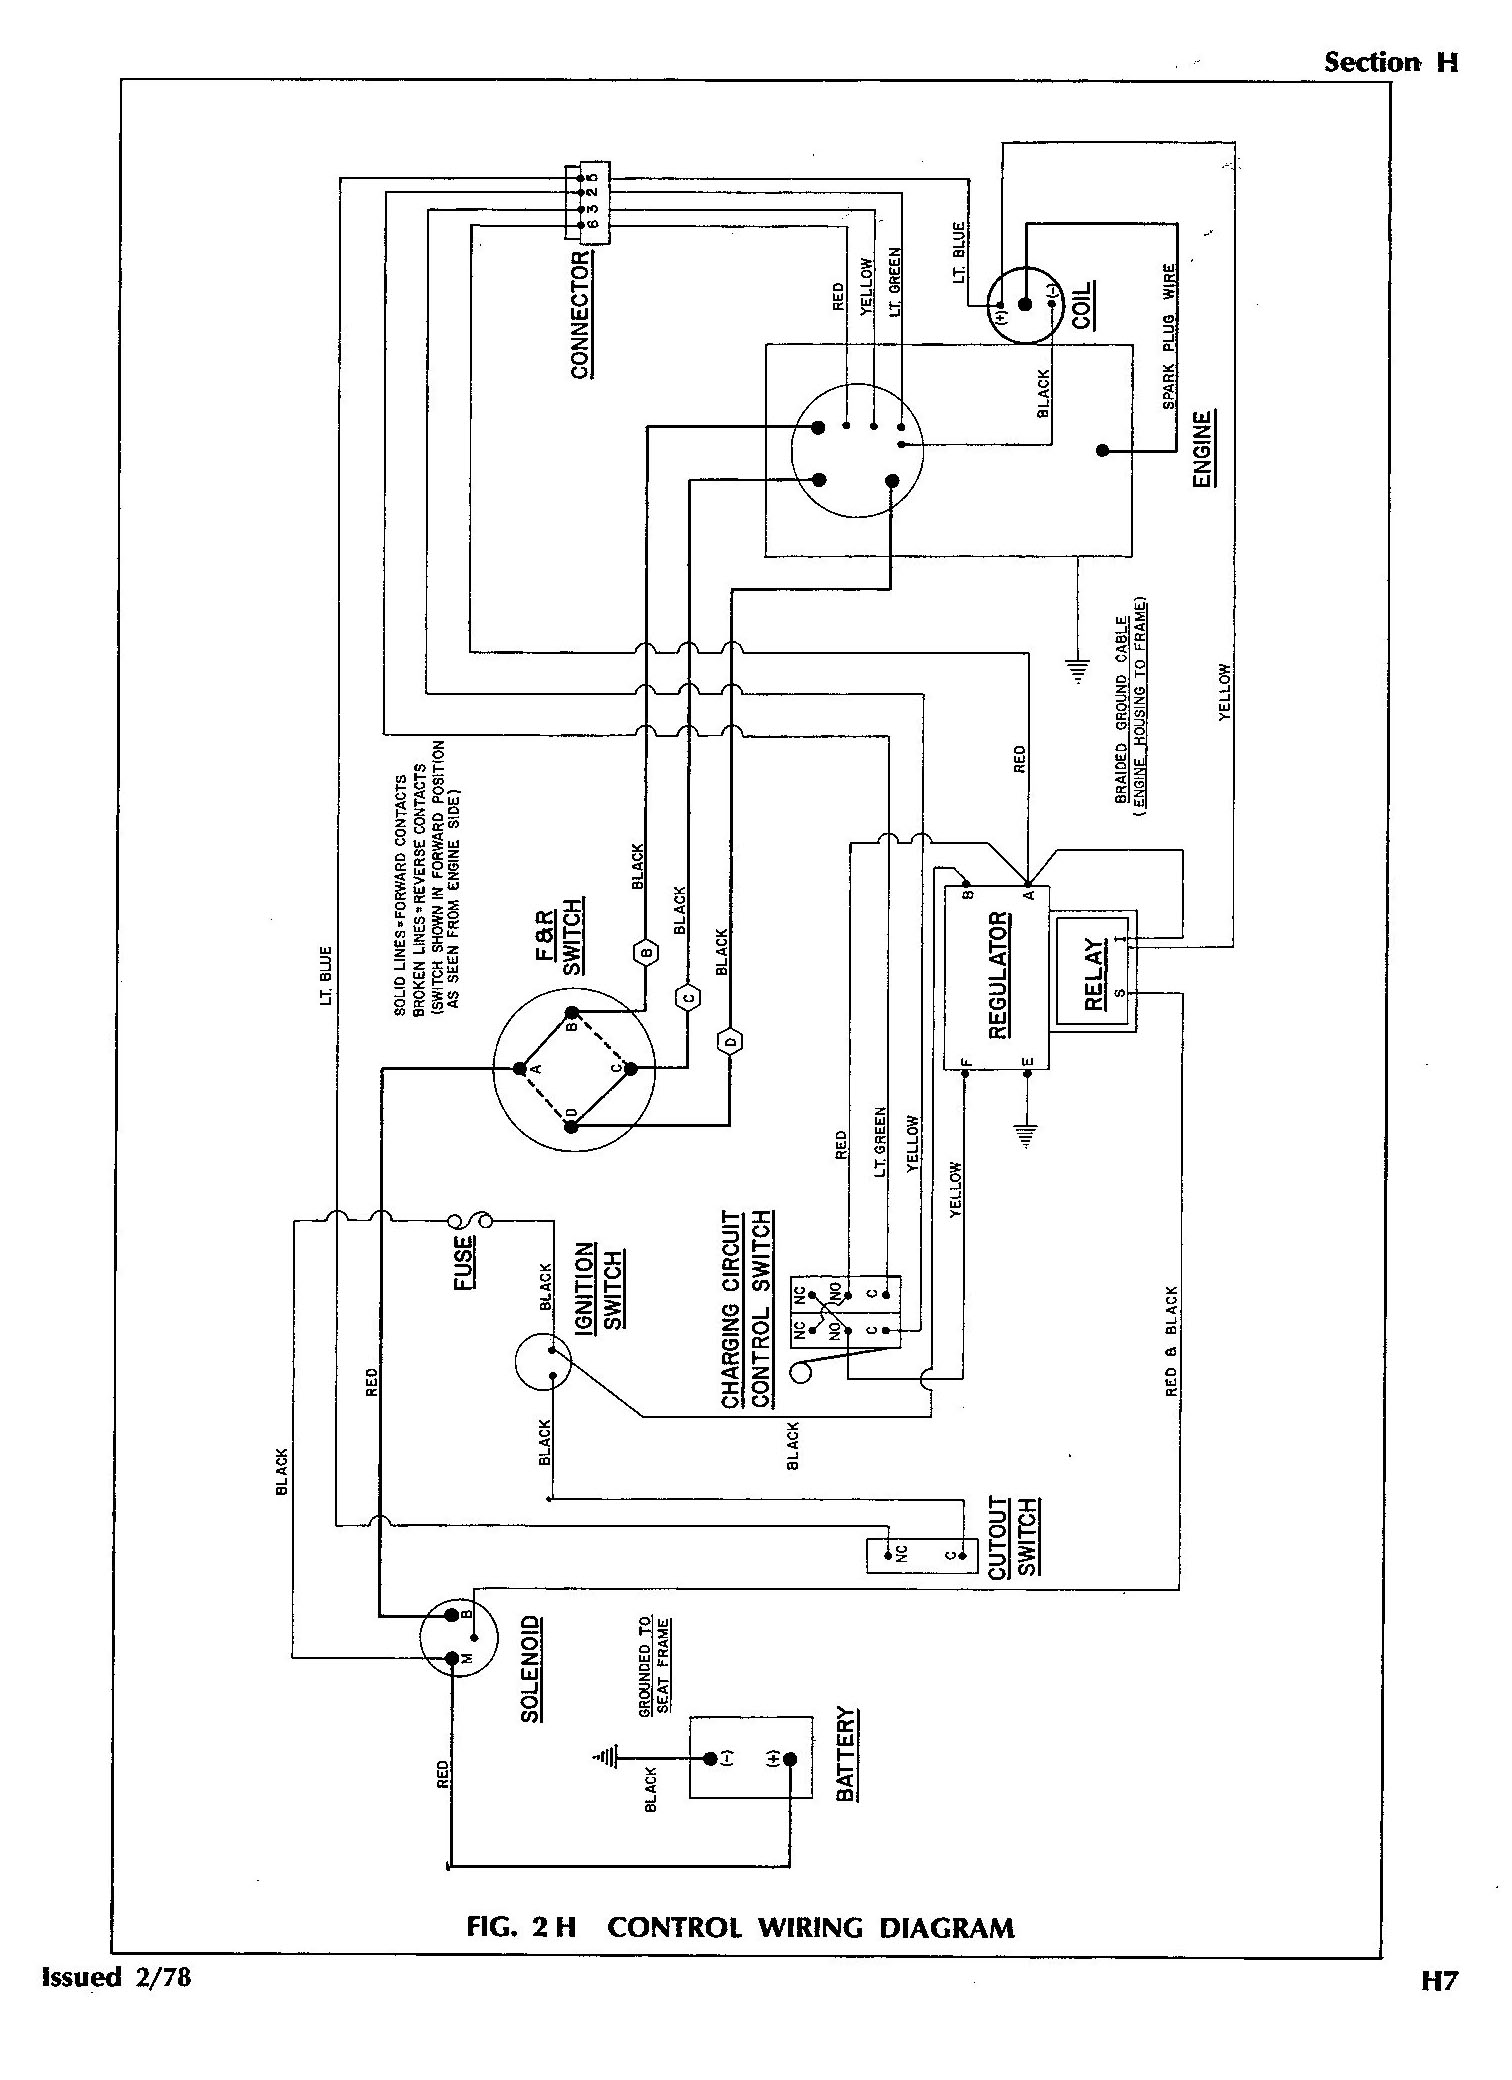 onan wiring circuit diagram with Gallery on Auto Changeover From Generator To Mains Supply also Onan Generator Wiring Diagram together with T1 Wiring Diagram Race additionally Holiday Rambler Battery Wiring Diagram together with Wiring Diagram For Sears Lawn Tractor.